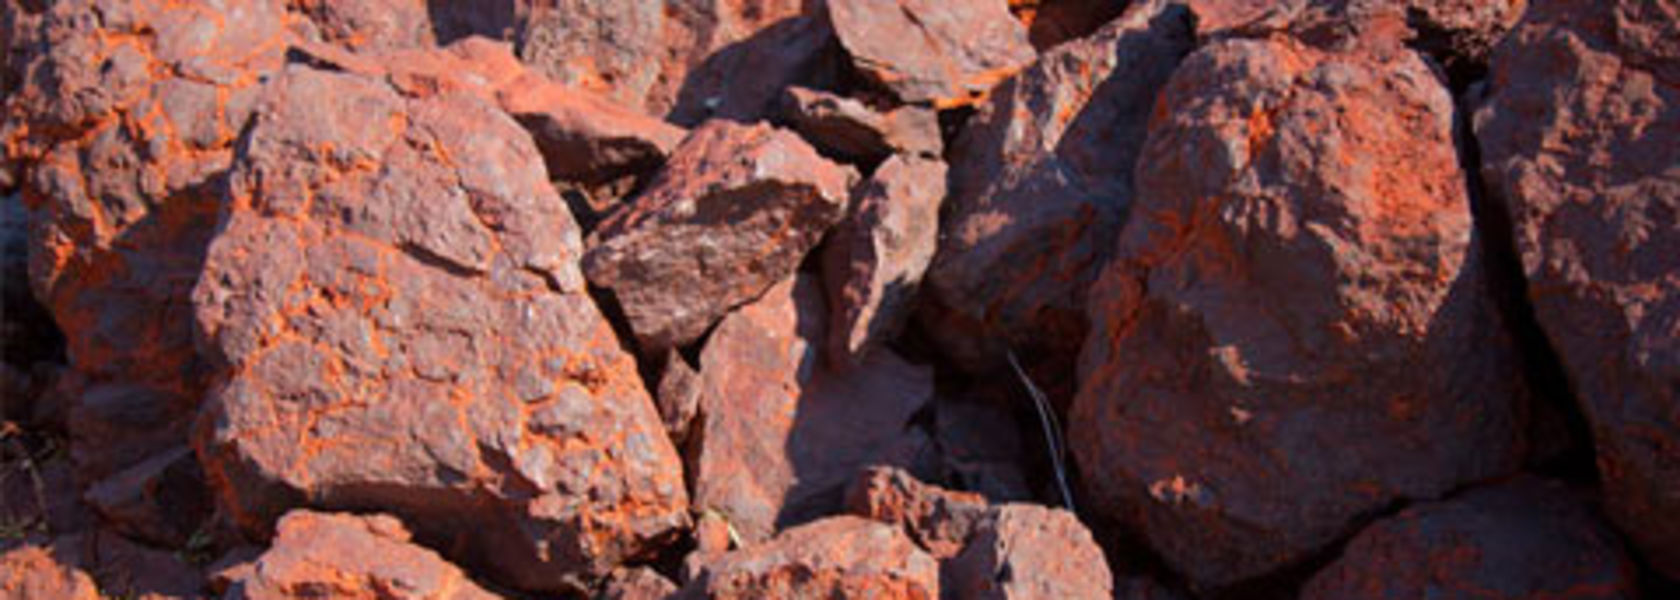 Thiess to build Roy Hill process facilities